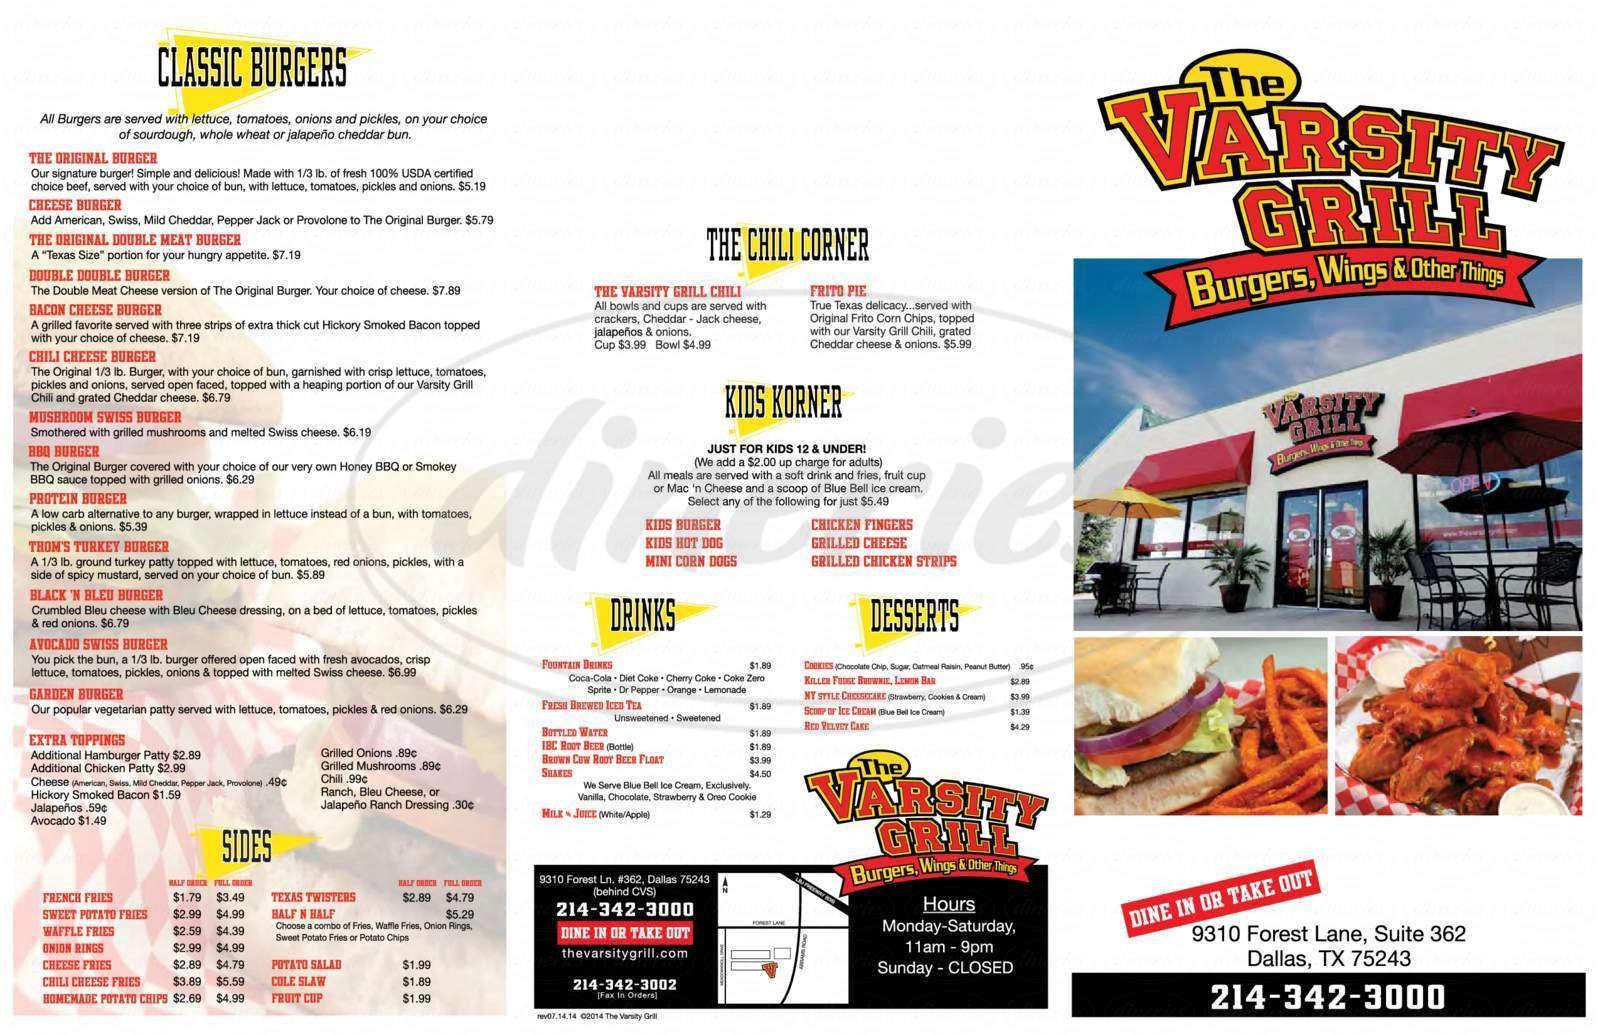 menu for The Varsity Grill